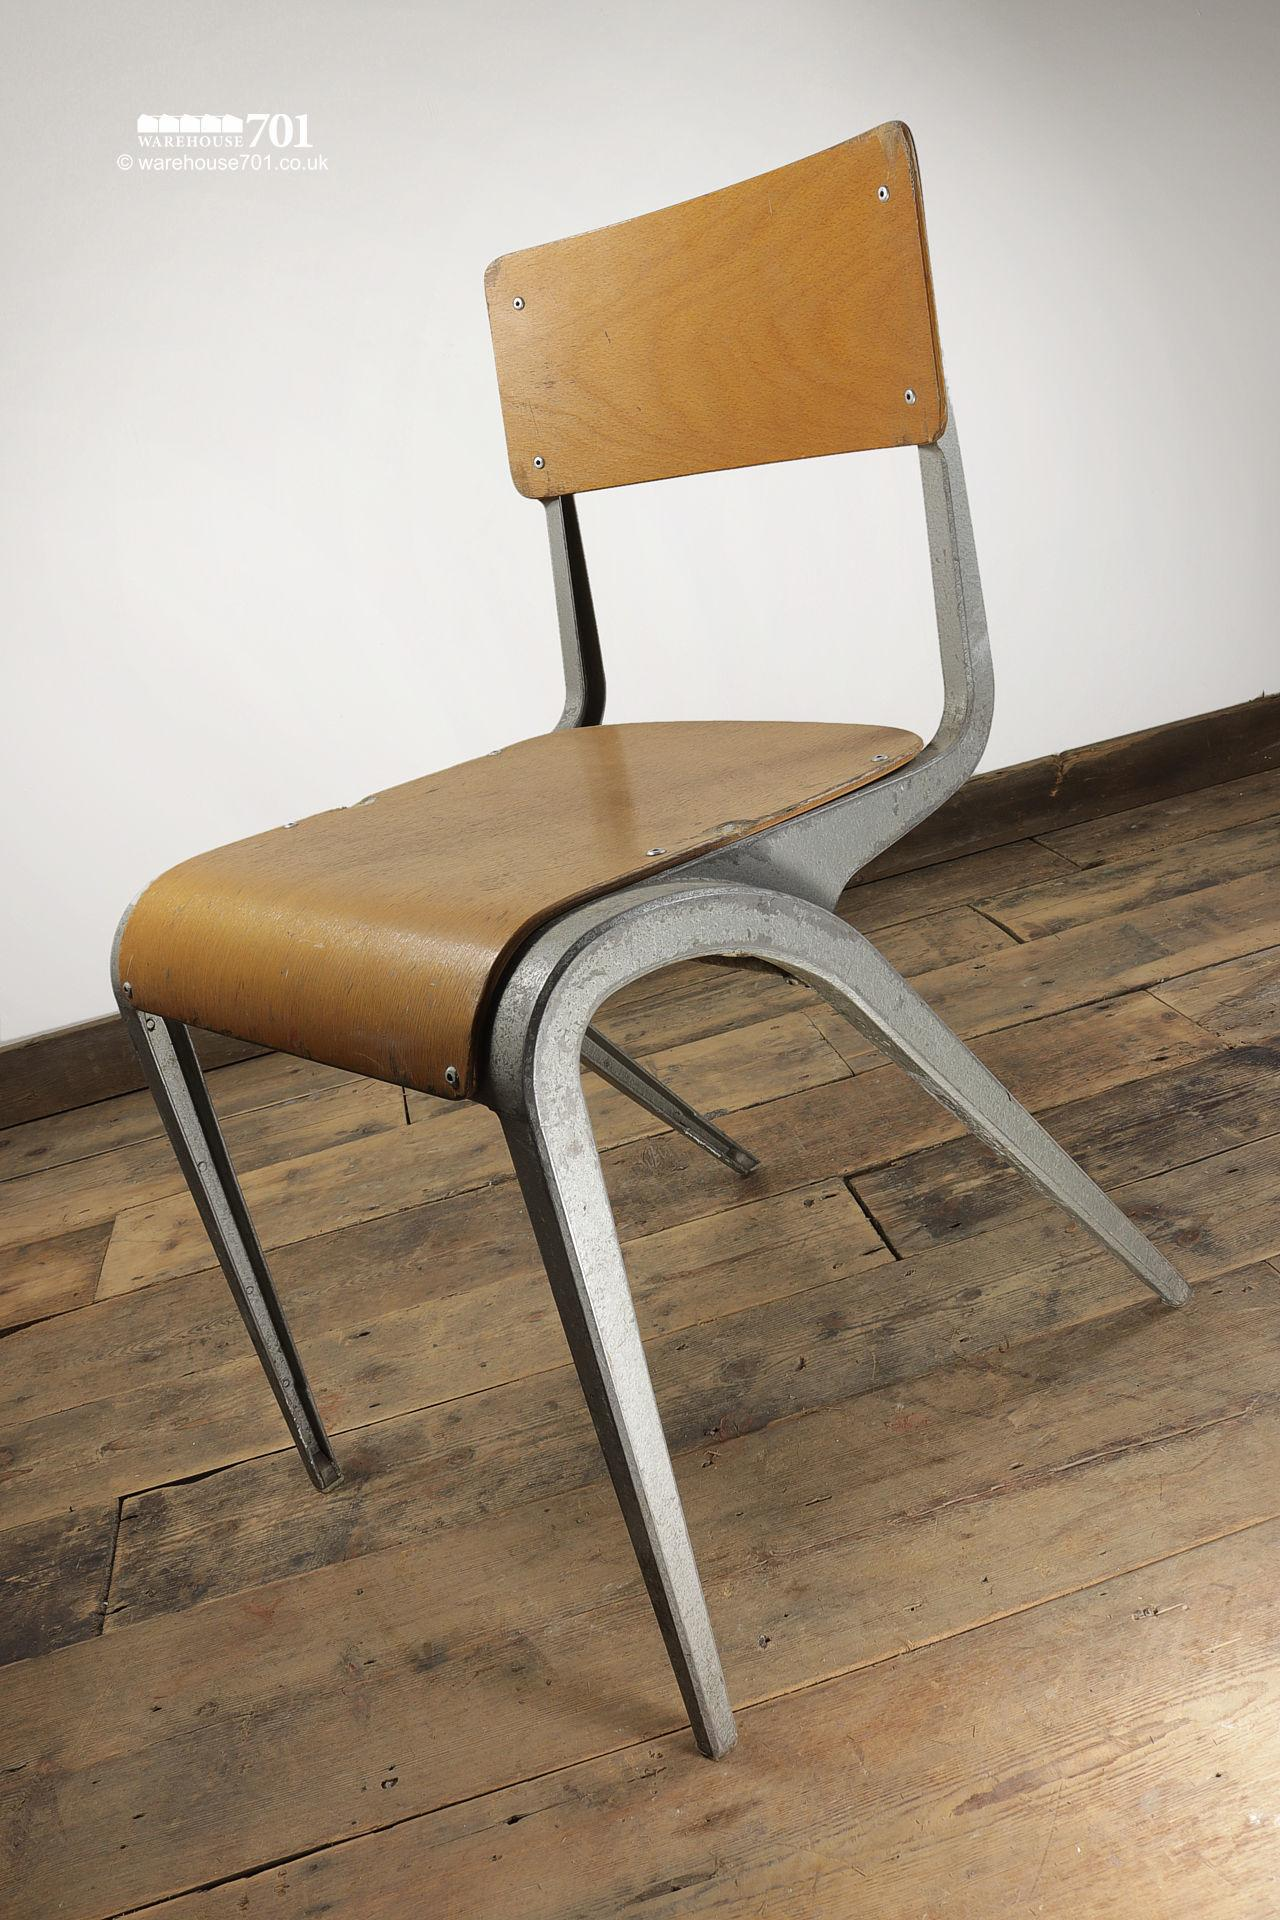 Vintage 1950s Esavian Alloy & Ply Stacking Chairs #3